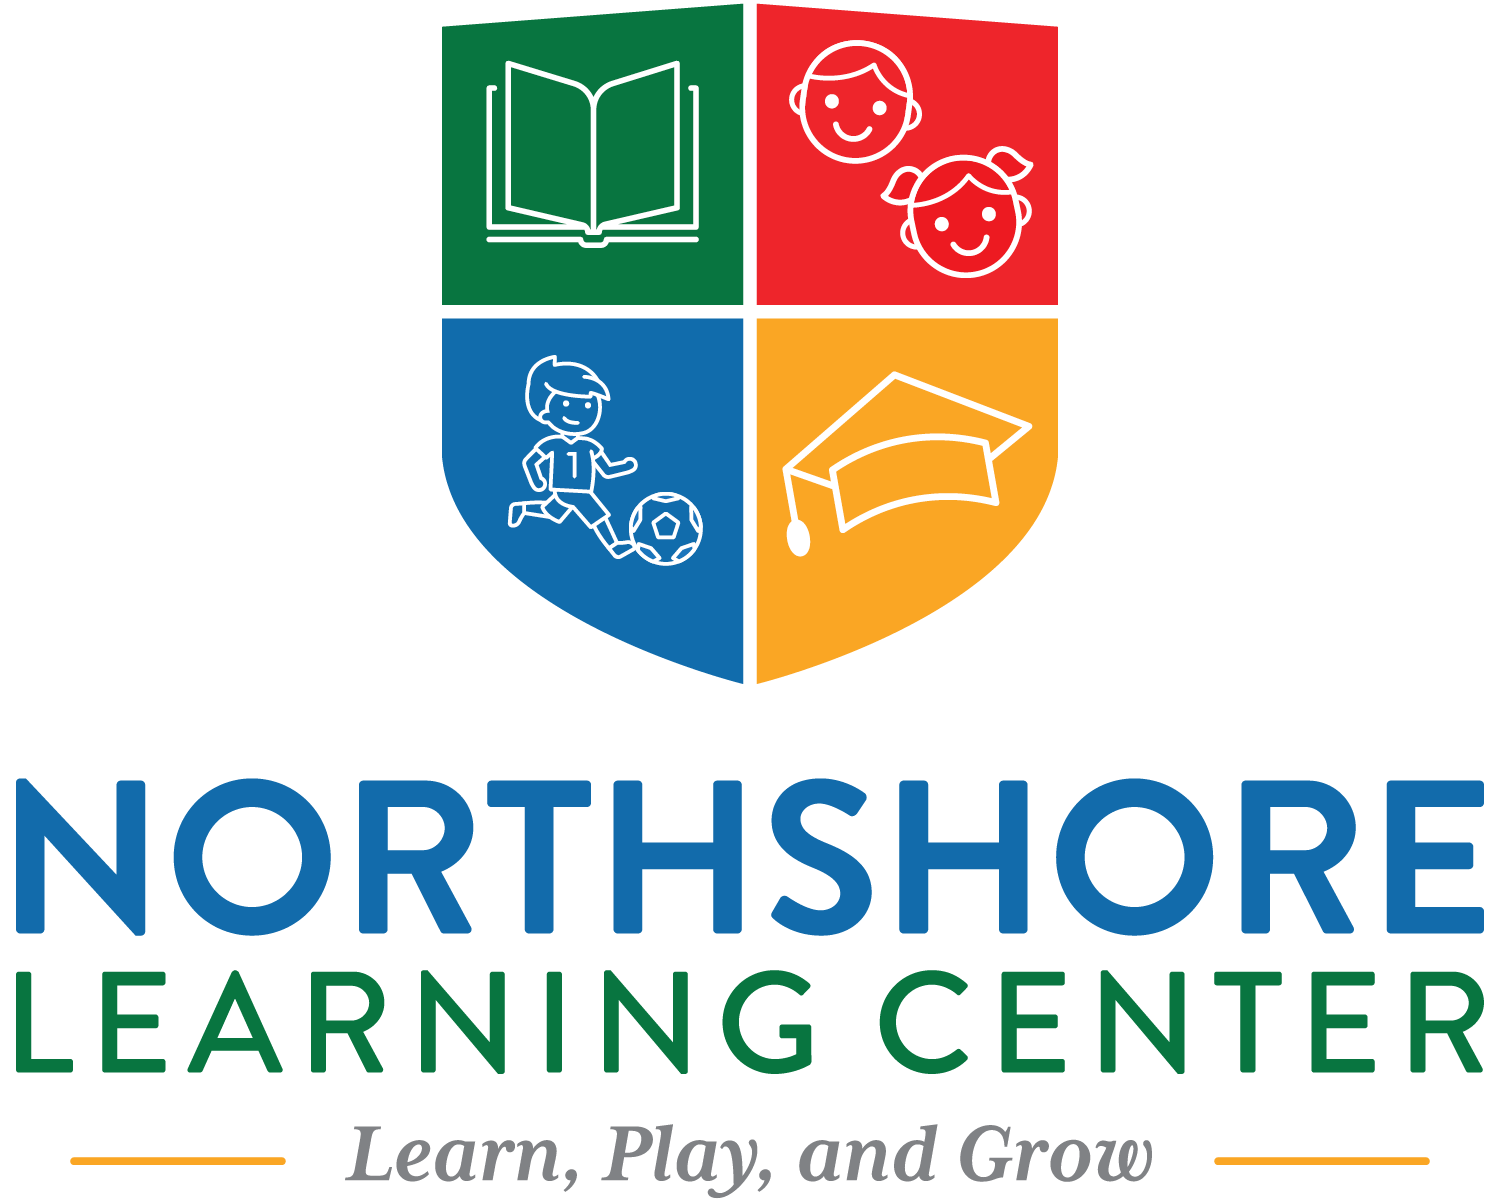 Northshore Learning Center